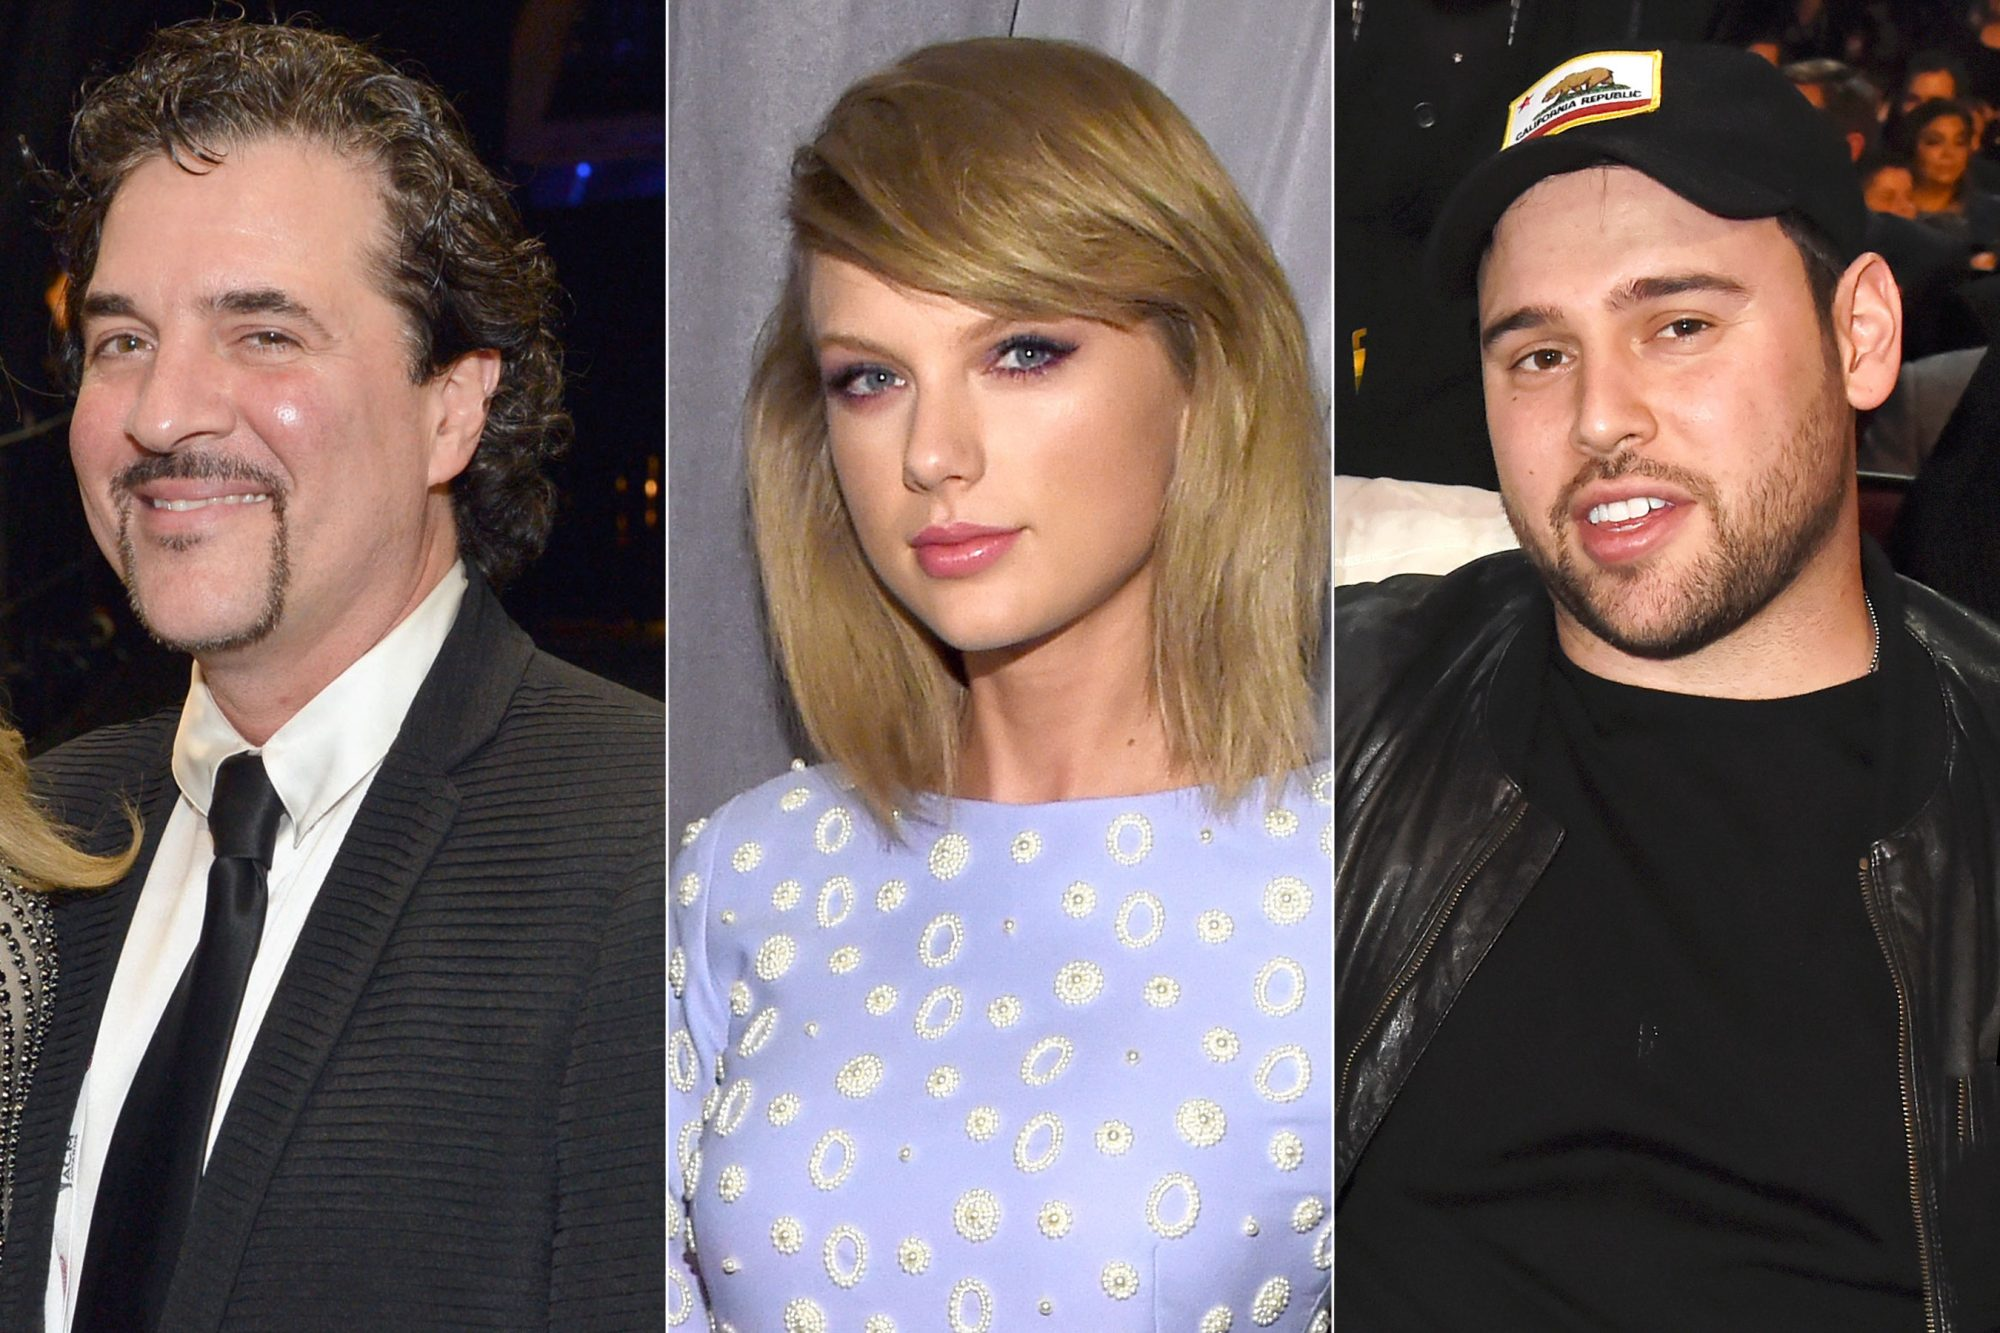 Scott Borchetta, Taylor Swift, Scooter Braun